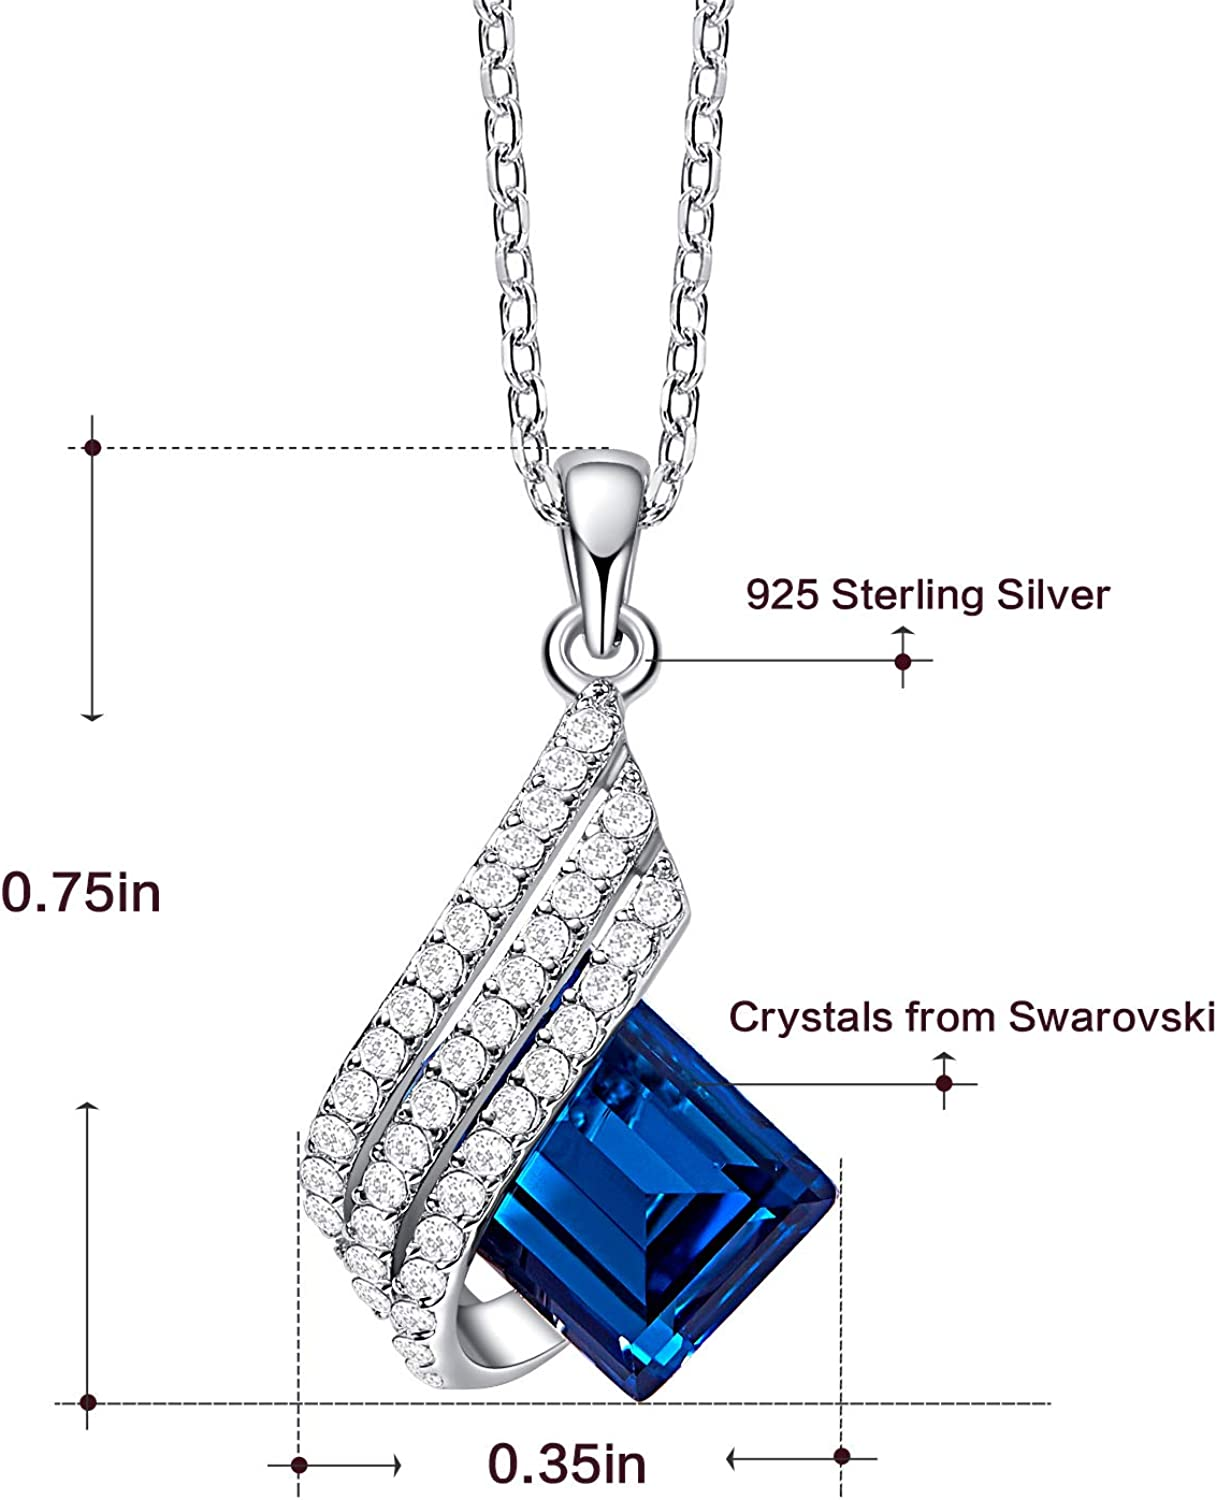 FOIOSDG Embellished with Crystals from Swarovski Necklace Trendy Rhinestone Crystal Pendant Necklaces Silver Gold Statement Jewelry